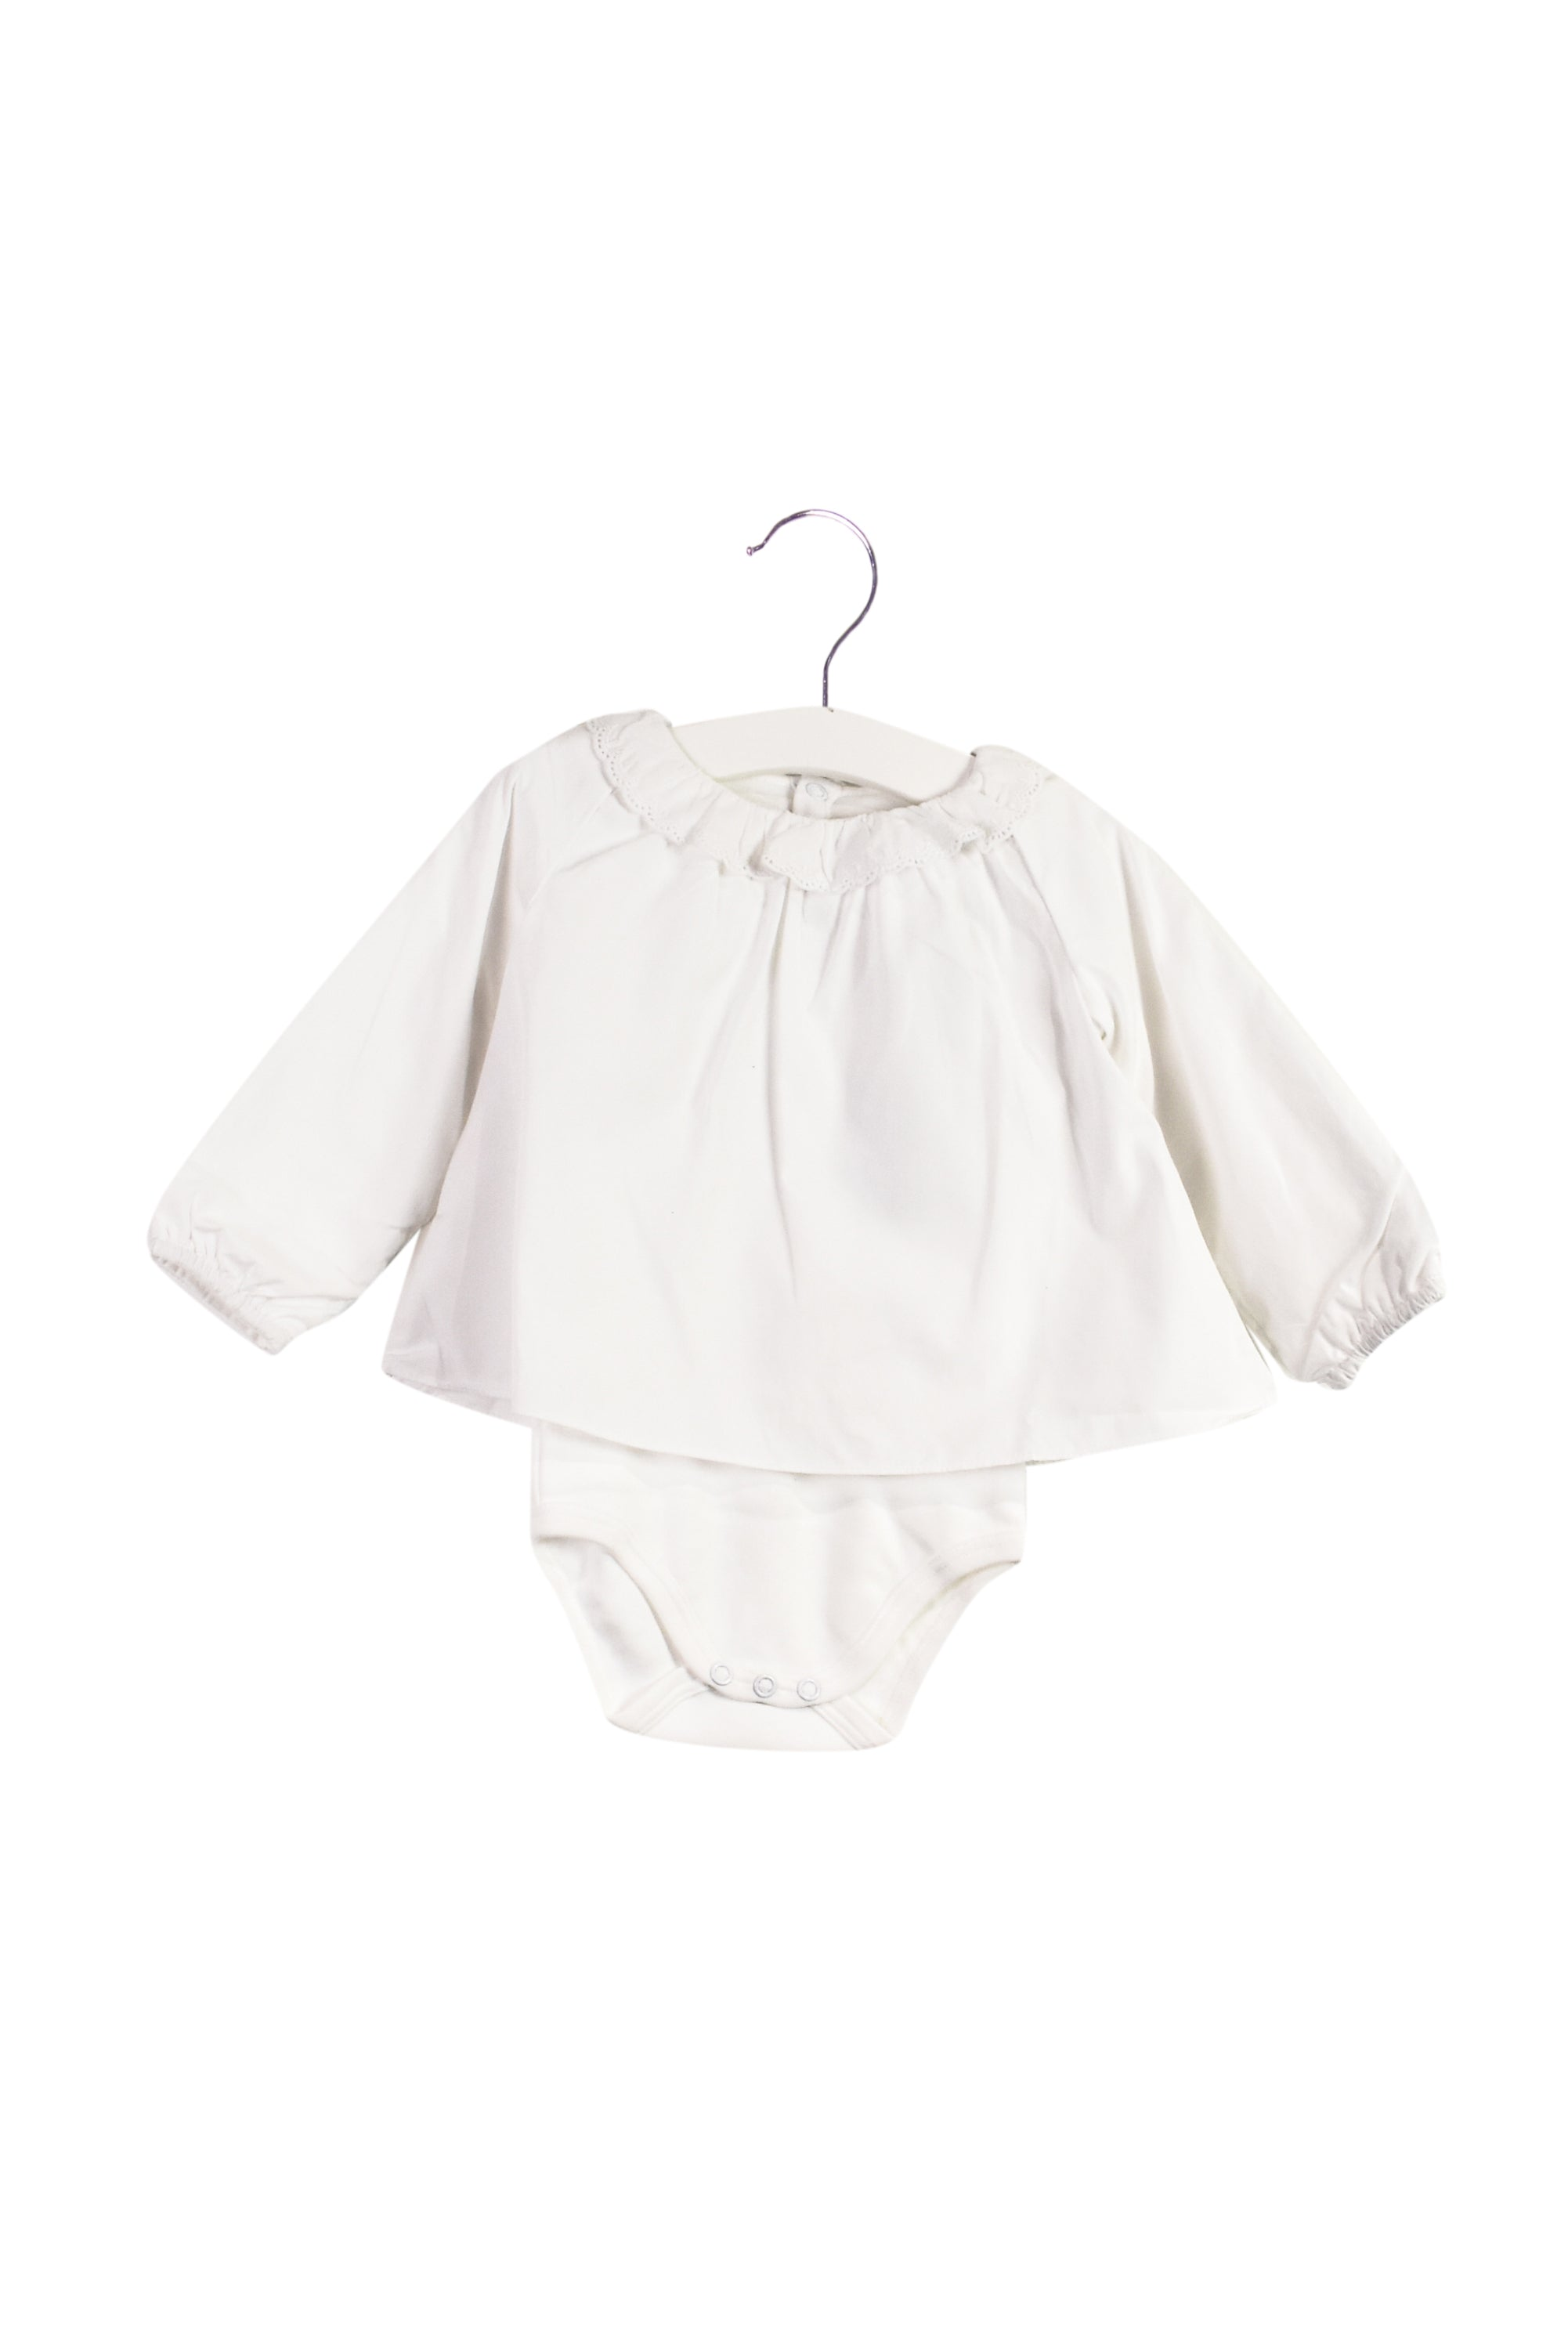 10029643 Jacadi Baby~Bodysuit 12M at Retykle